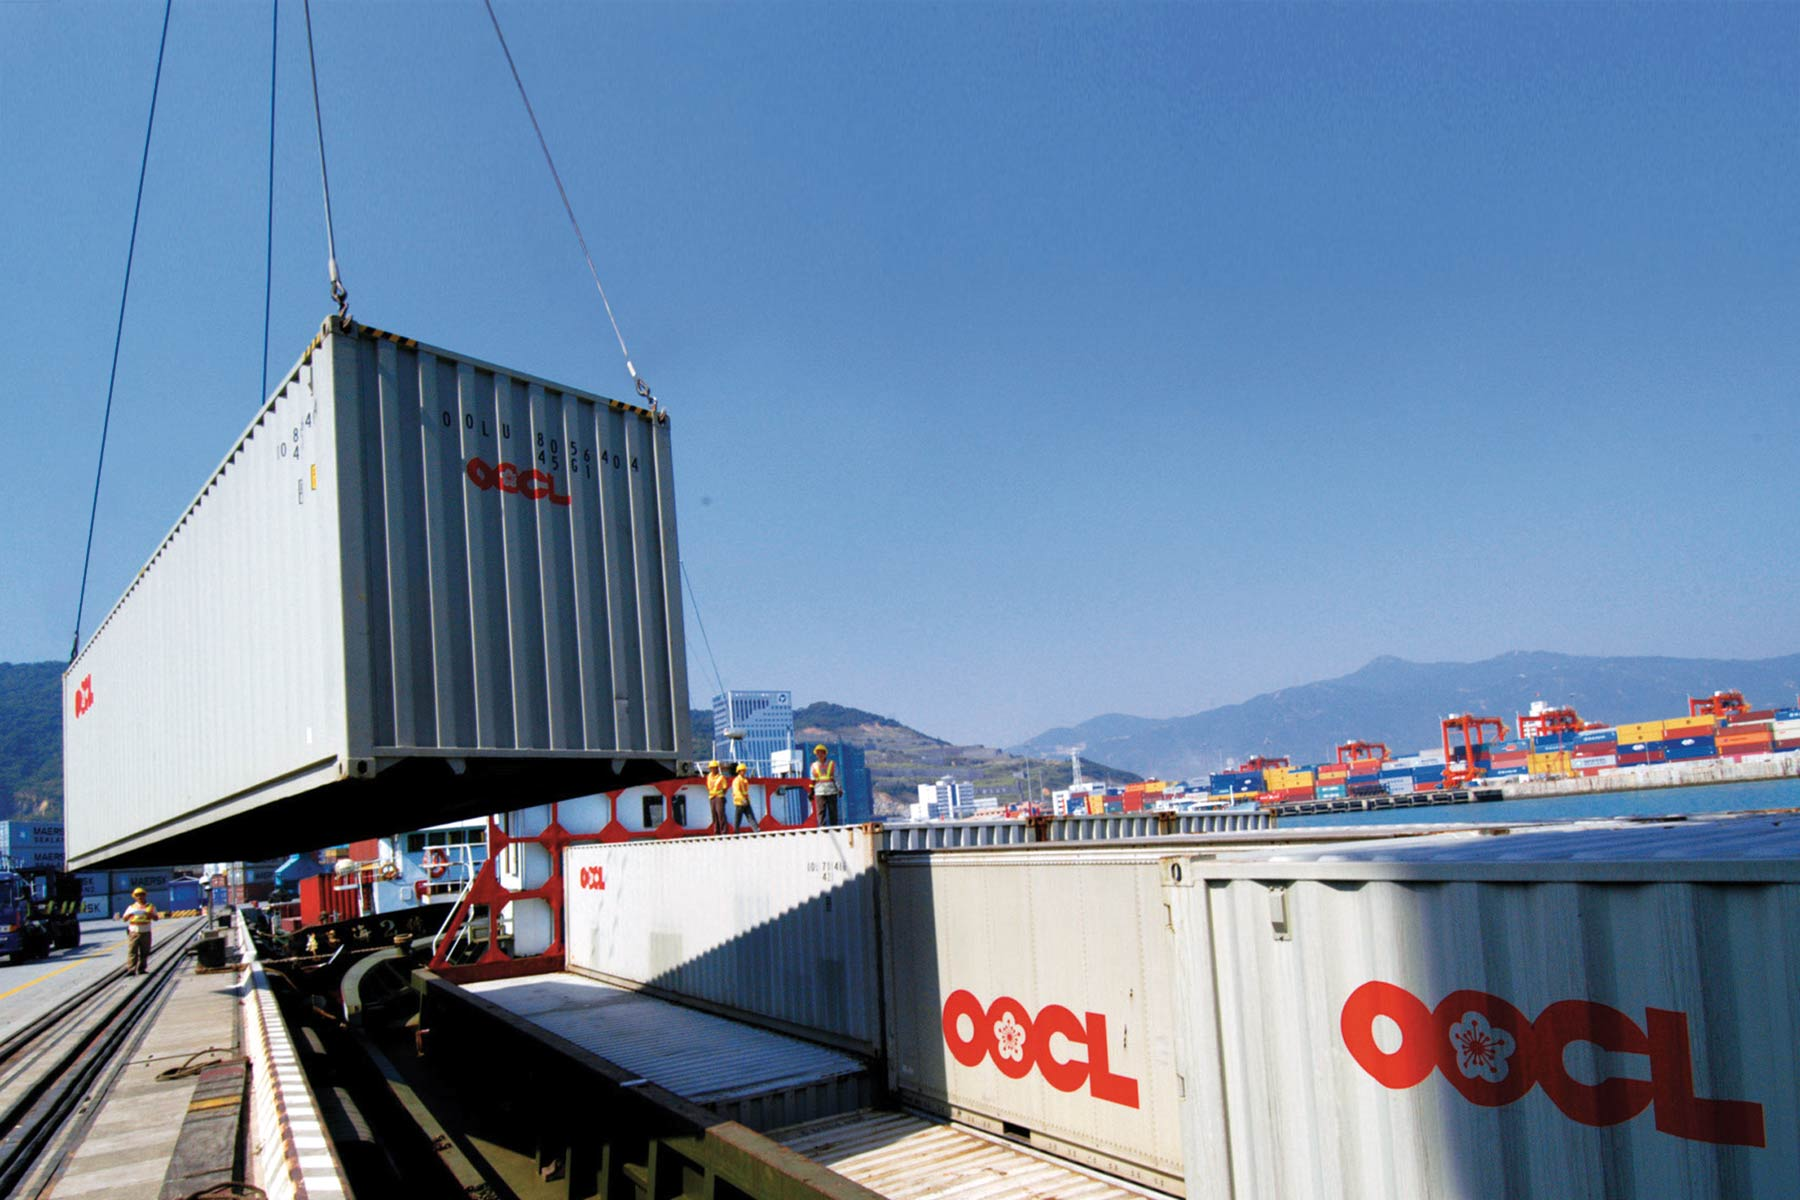 OOCL - Photo Gallery